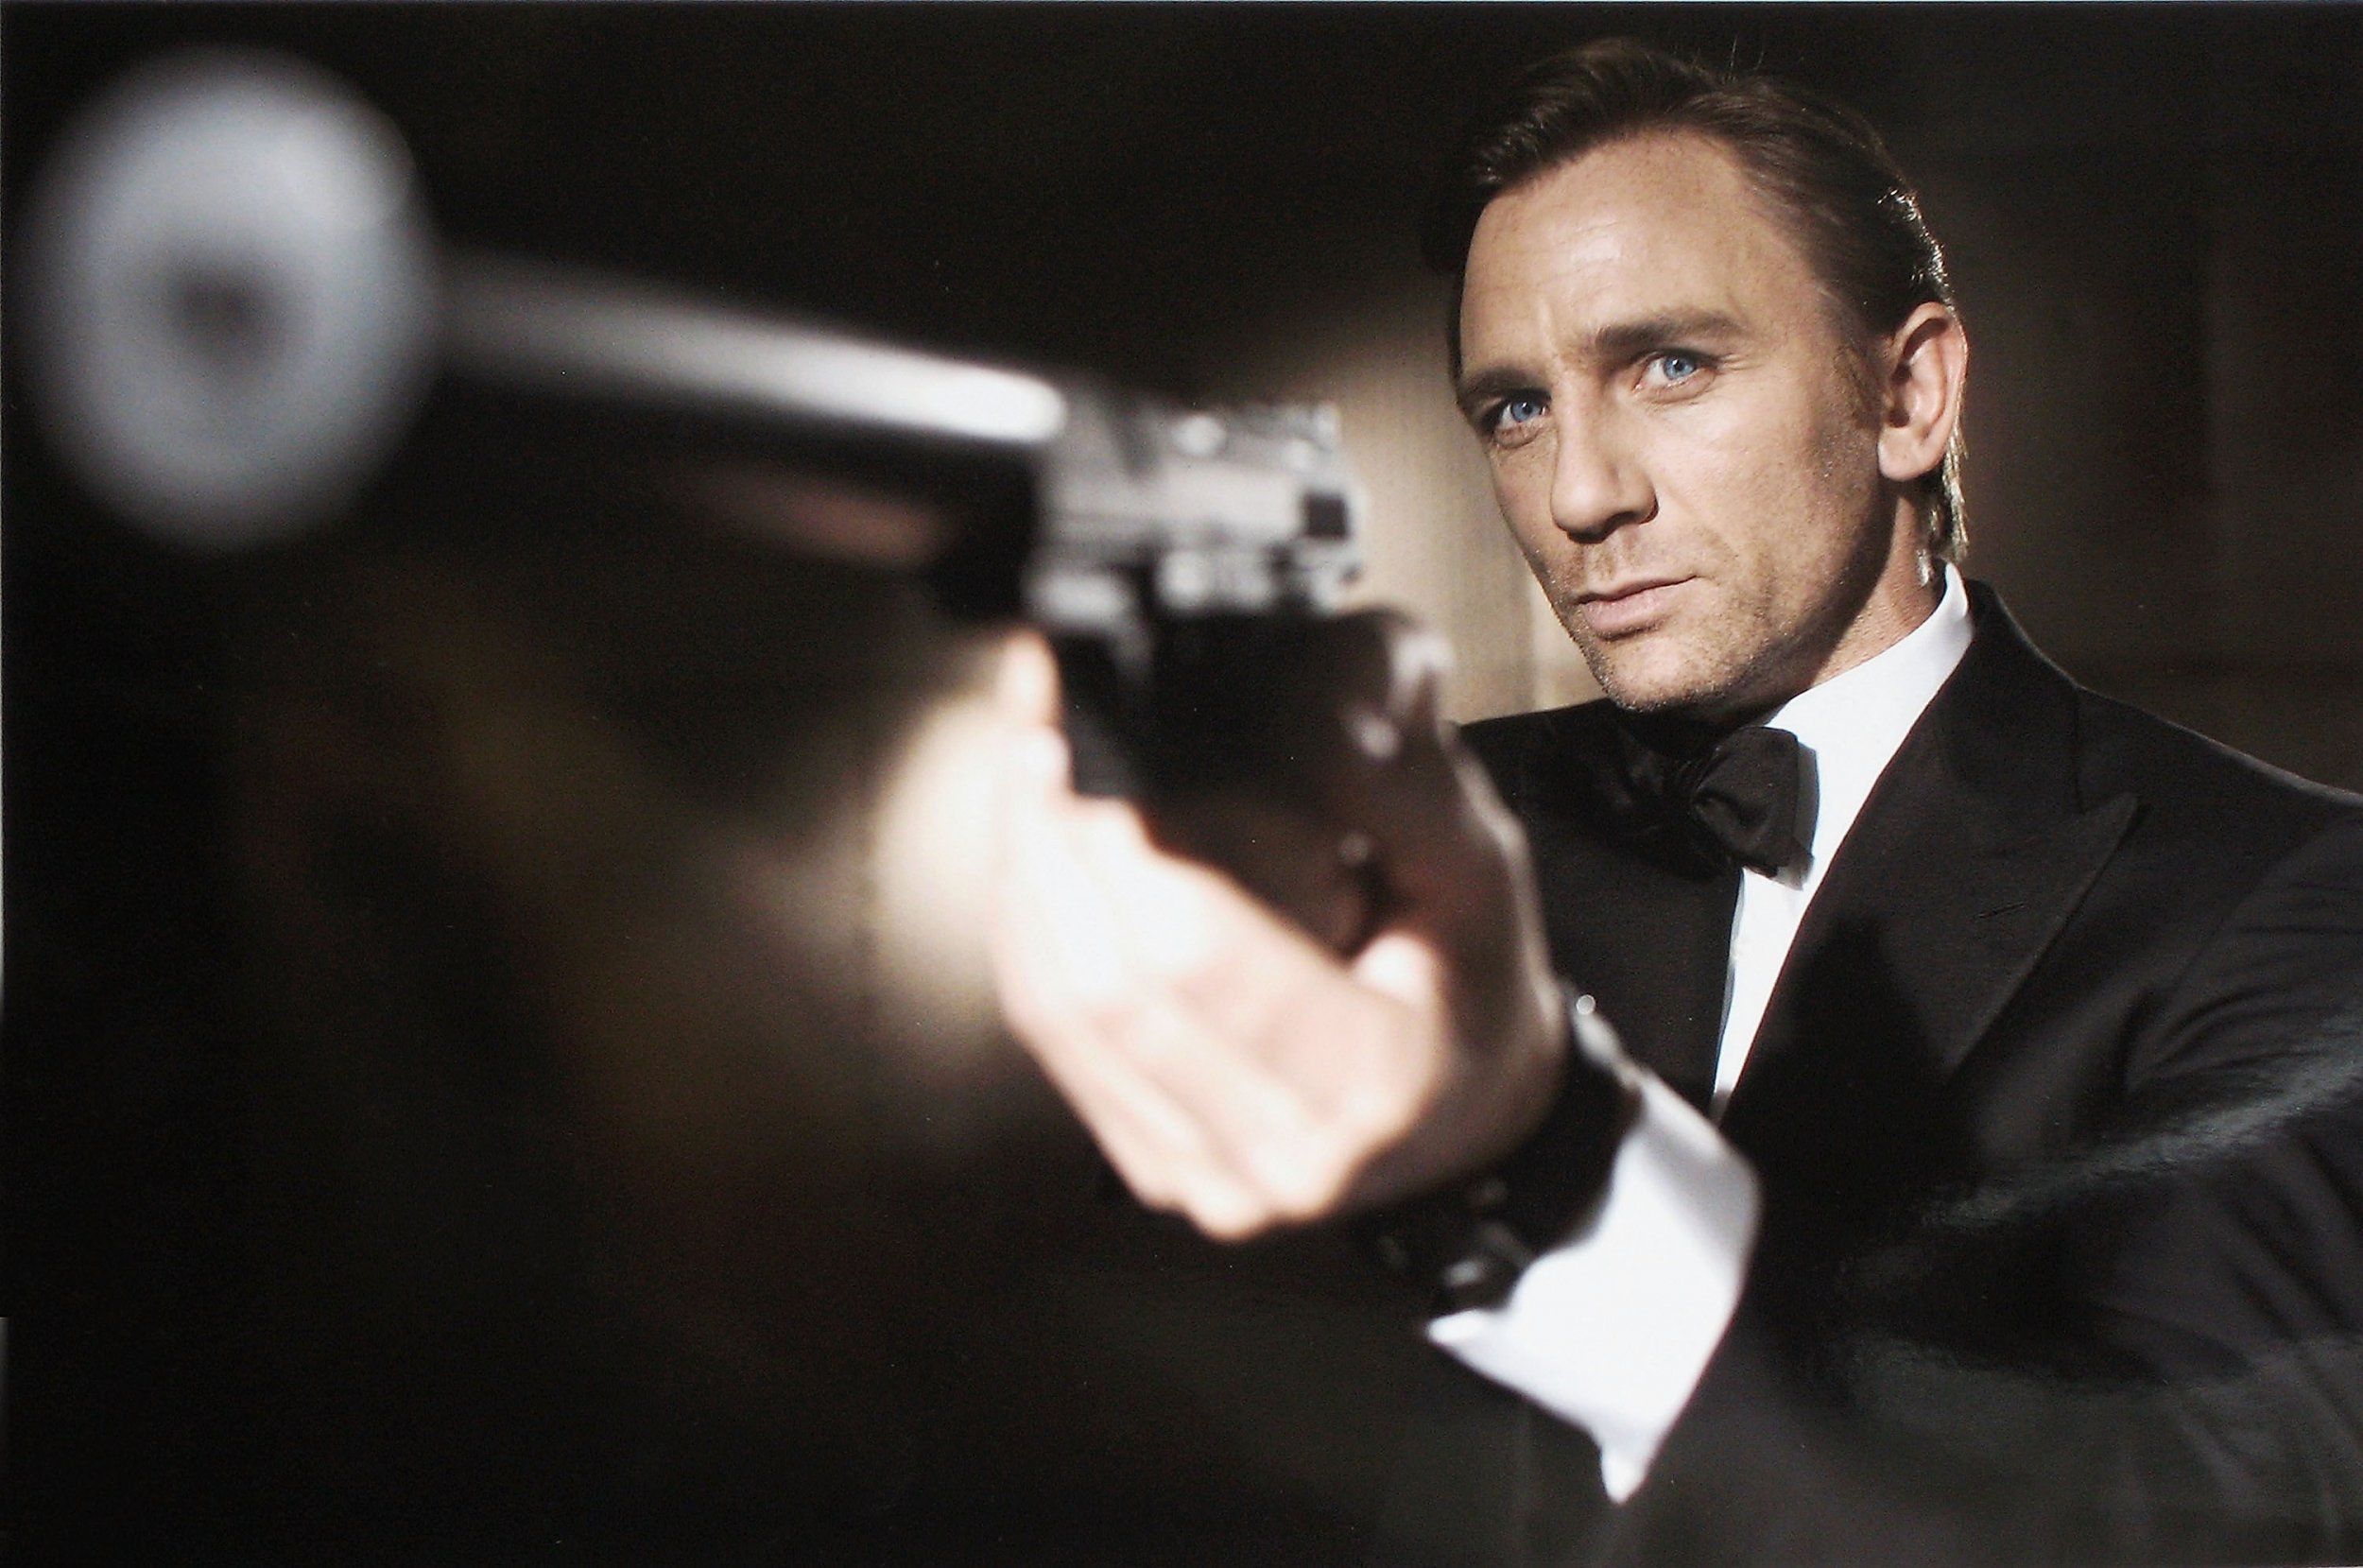 James Bond has a severe drinking problem, experts say